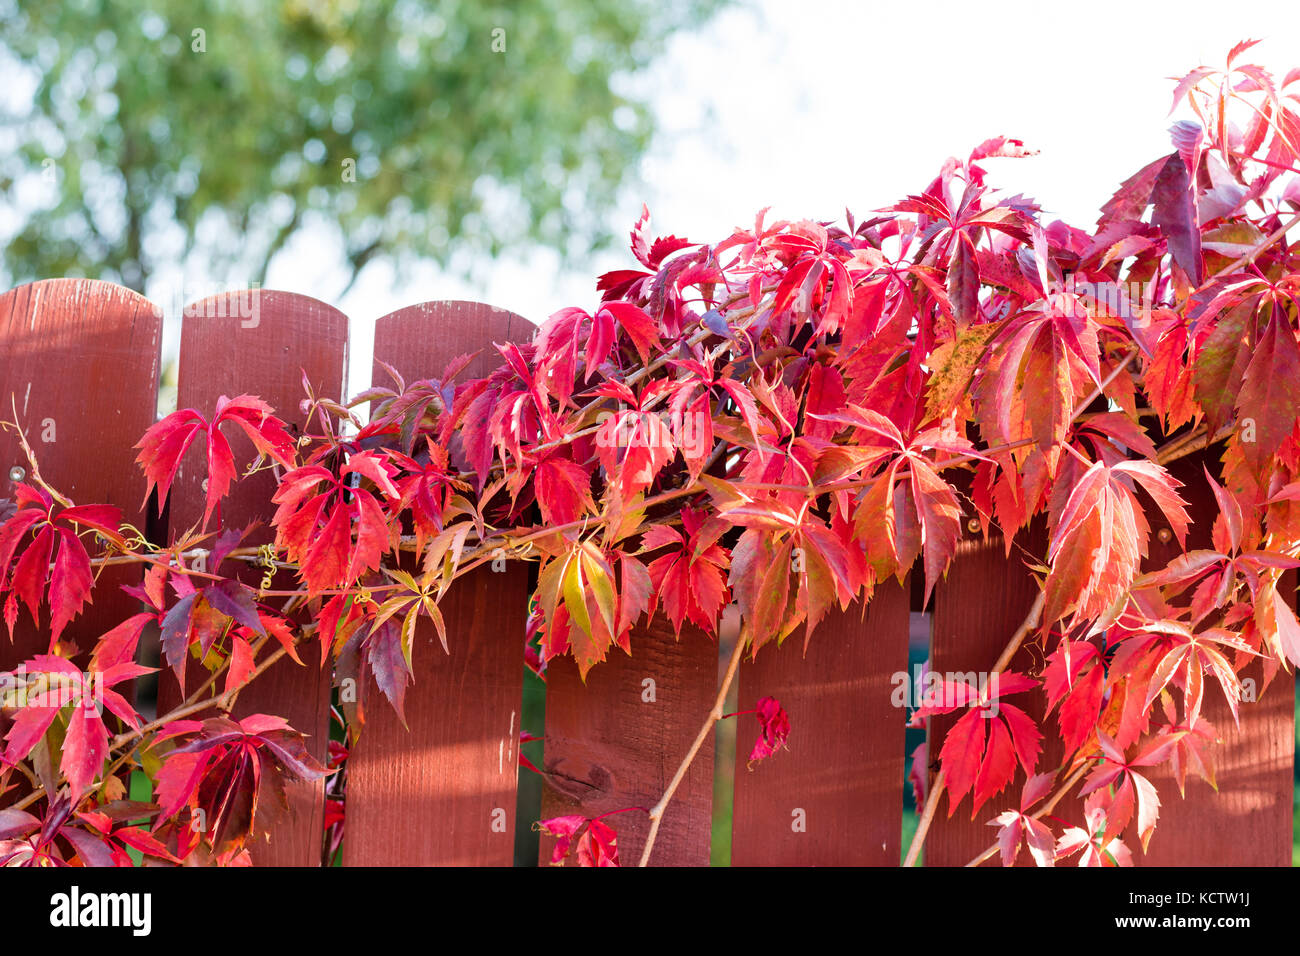 Orange Growing By Fence Stockfotos & Orange Growing By Fence Bilder ...